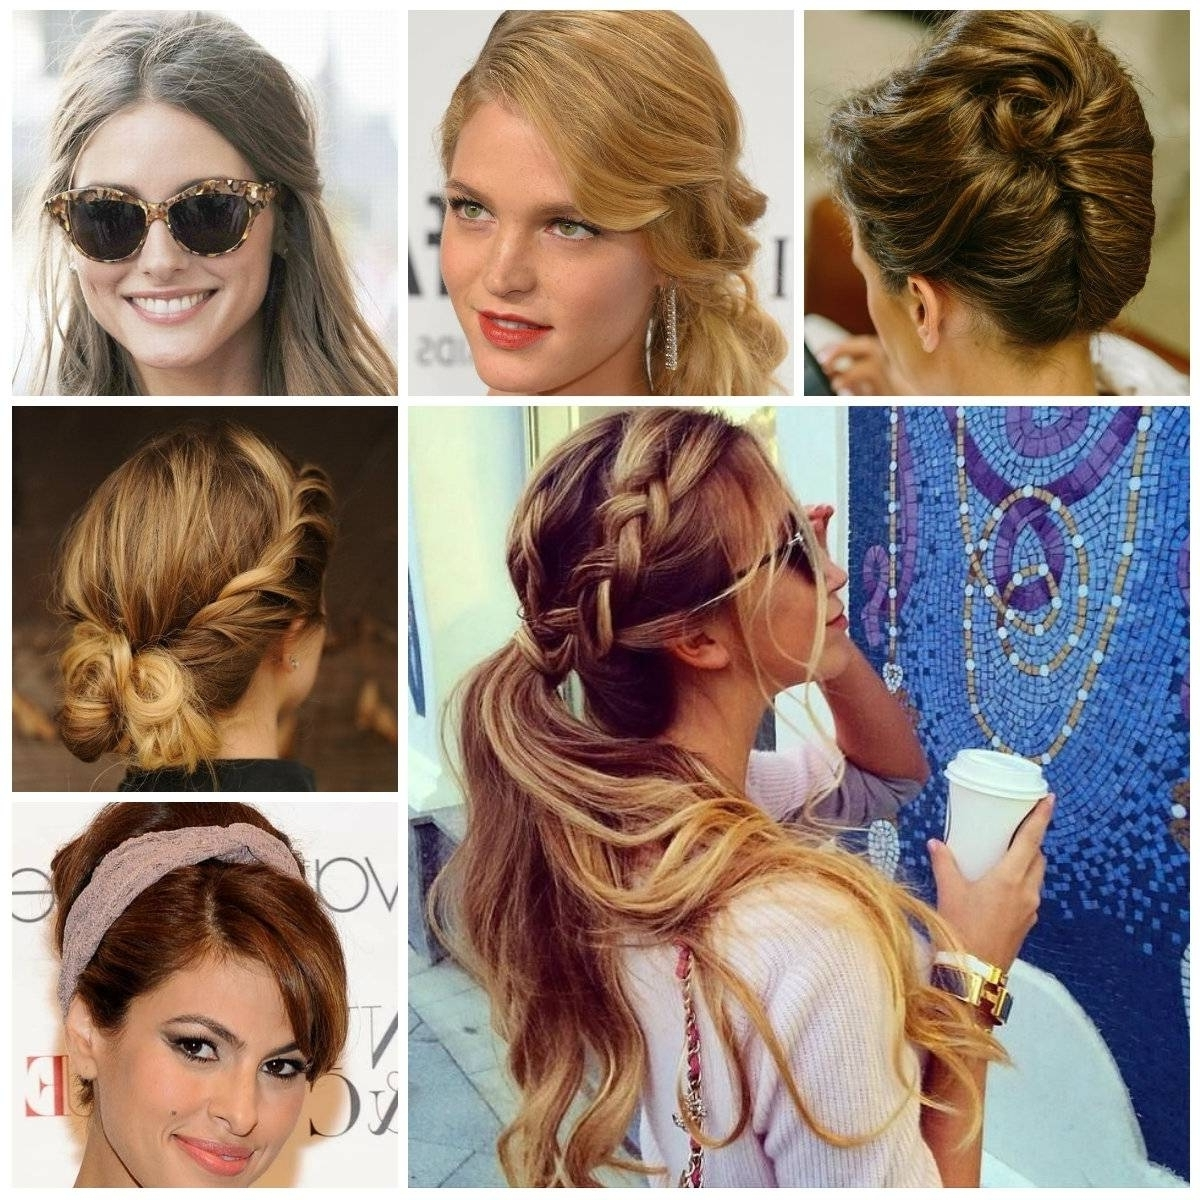 Best And Newest Easy Casual Braided Updo Hairstyles For Easy Casual Updo Hairstyles For Long Hair Women Medium Haircut (View 3 of 15)